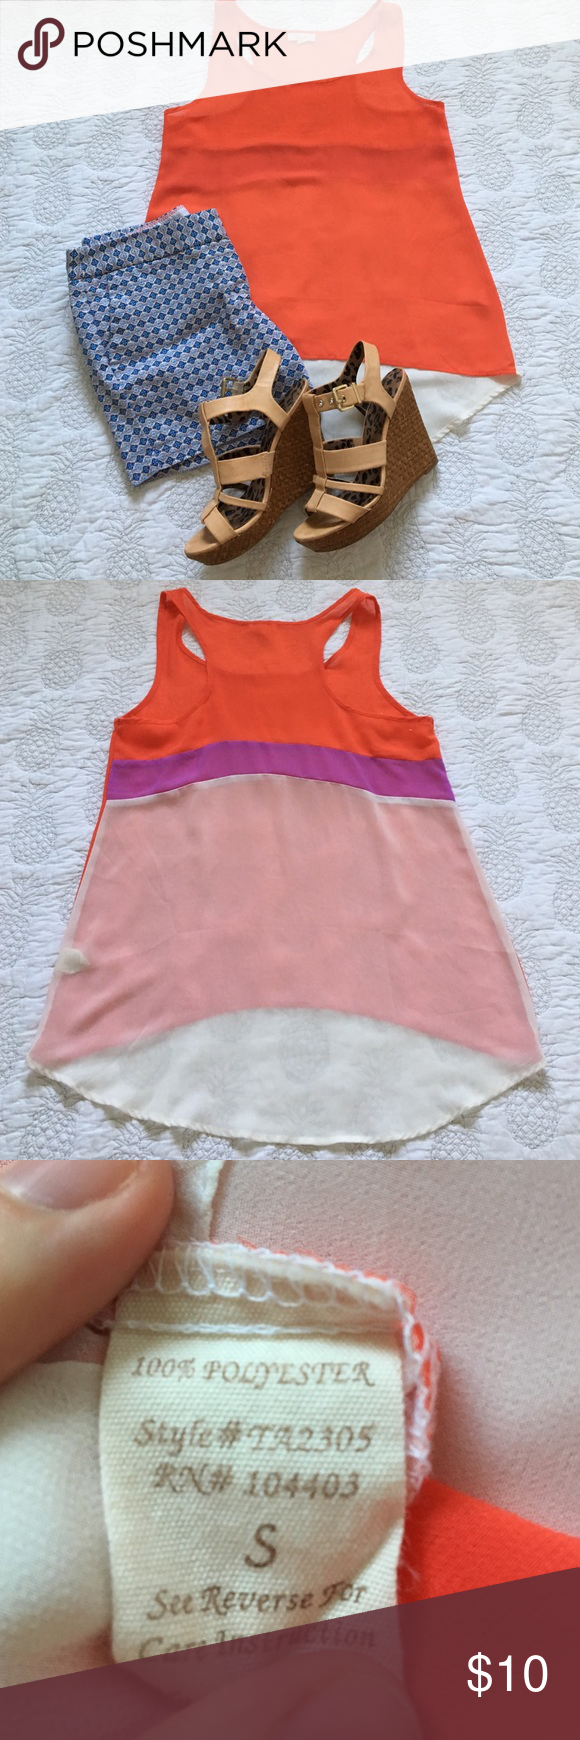 E (hanger) M color block tank This is an E (hanger) M flowy, sheer, color block, racer back, tank. The front is a vibrant tangerine, while the back is color blocked with tangerine, orchid, and ivory. It is a high-low hem. It's perfect in the summer with a brightly printed pair of shorts and your favorite wedges for a casual yet chic lunch look, or an effortless beach style. It has never been worn, but washed once. E (hanger) M Tops Blouses